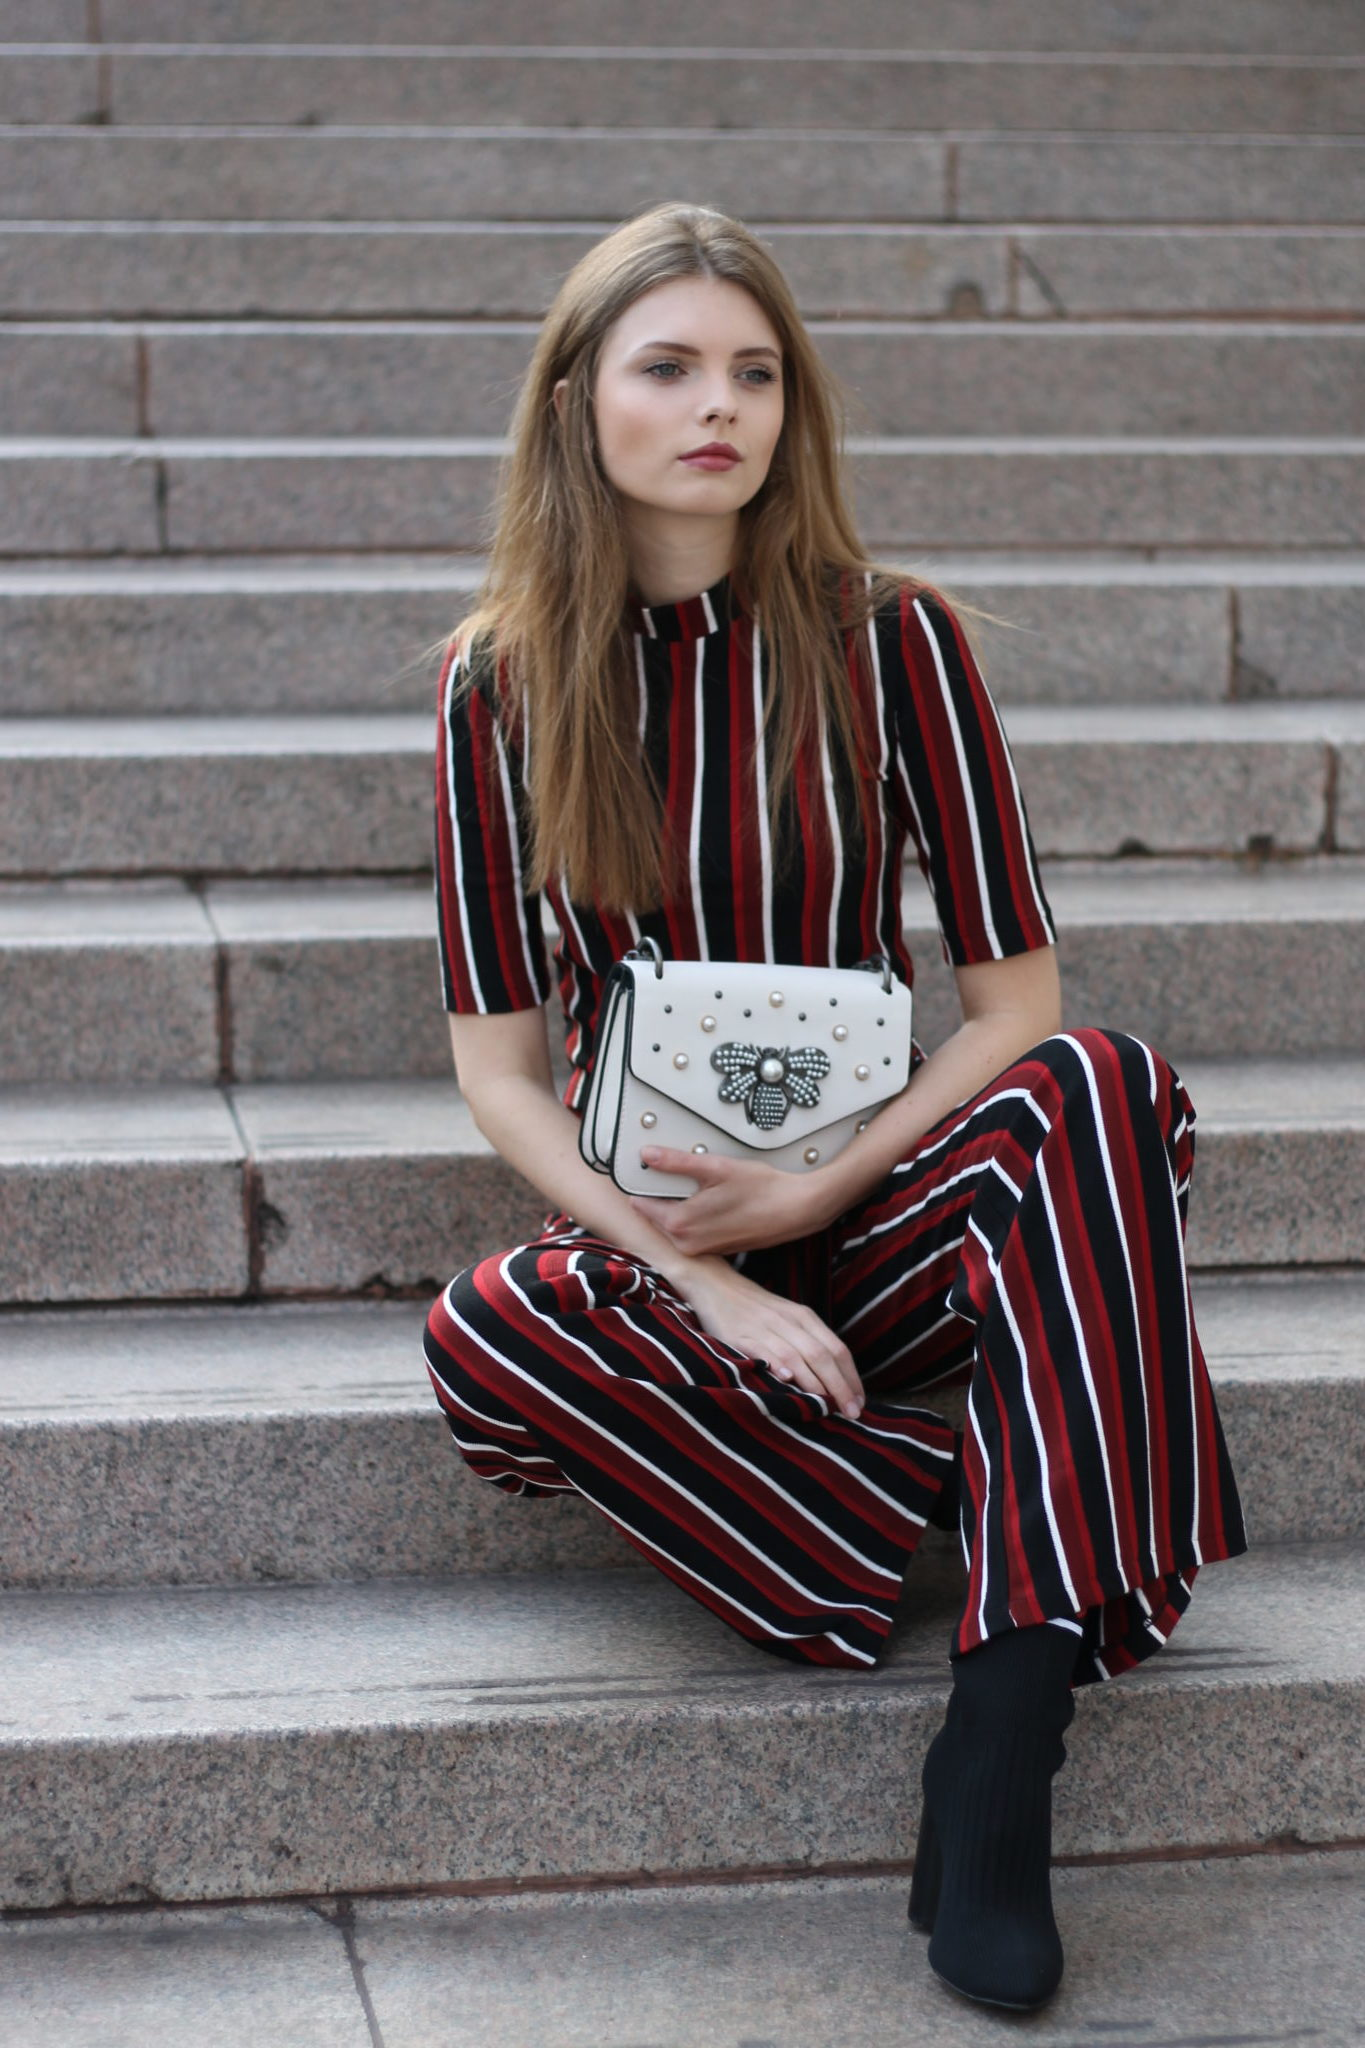 IMG 1846 e1519228545140 - BOLD STRIPED JUMPSUIT I MILAN